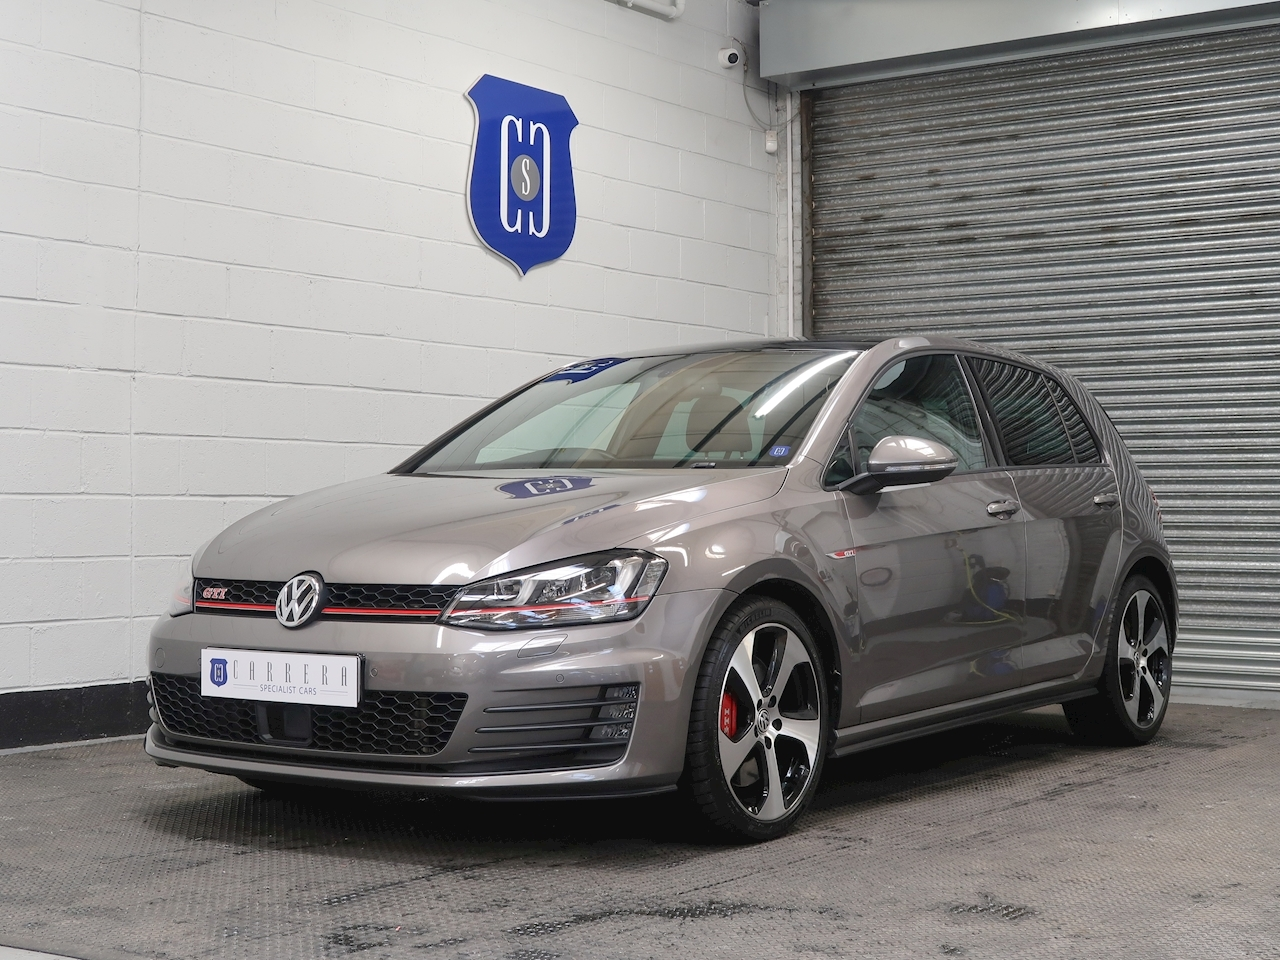 Volkswagen 2.0 TSI BlueMotion Tech GTI (Performance pack) Hatchback 5dr Petrol Manual (s/s) (139 g/km, 227 bhp)